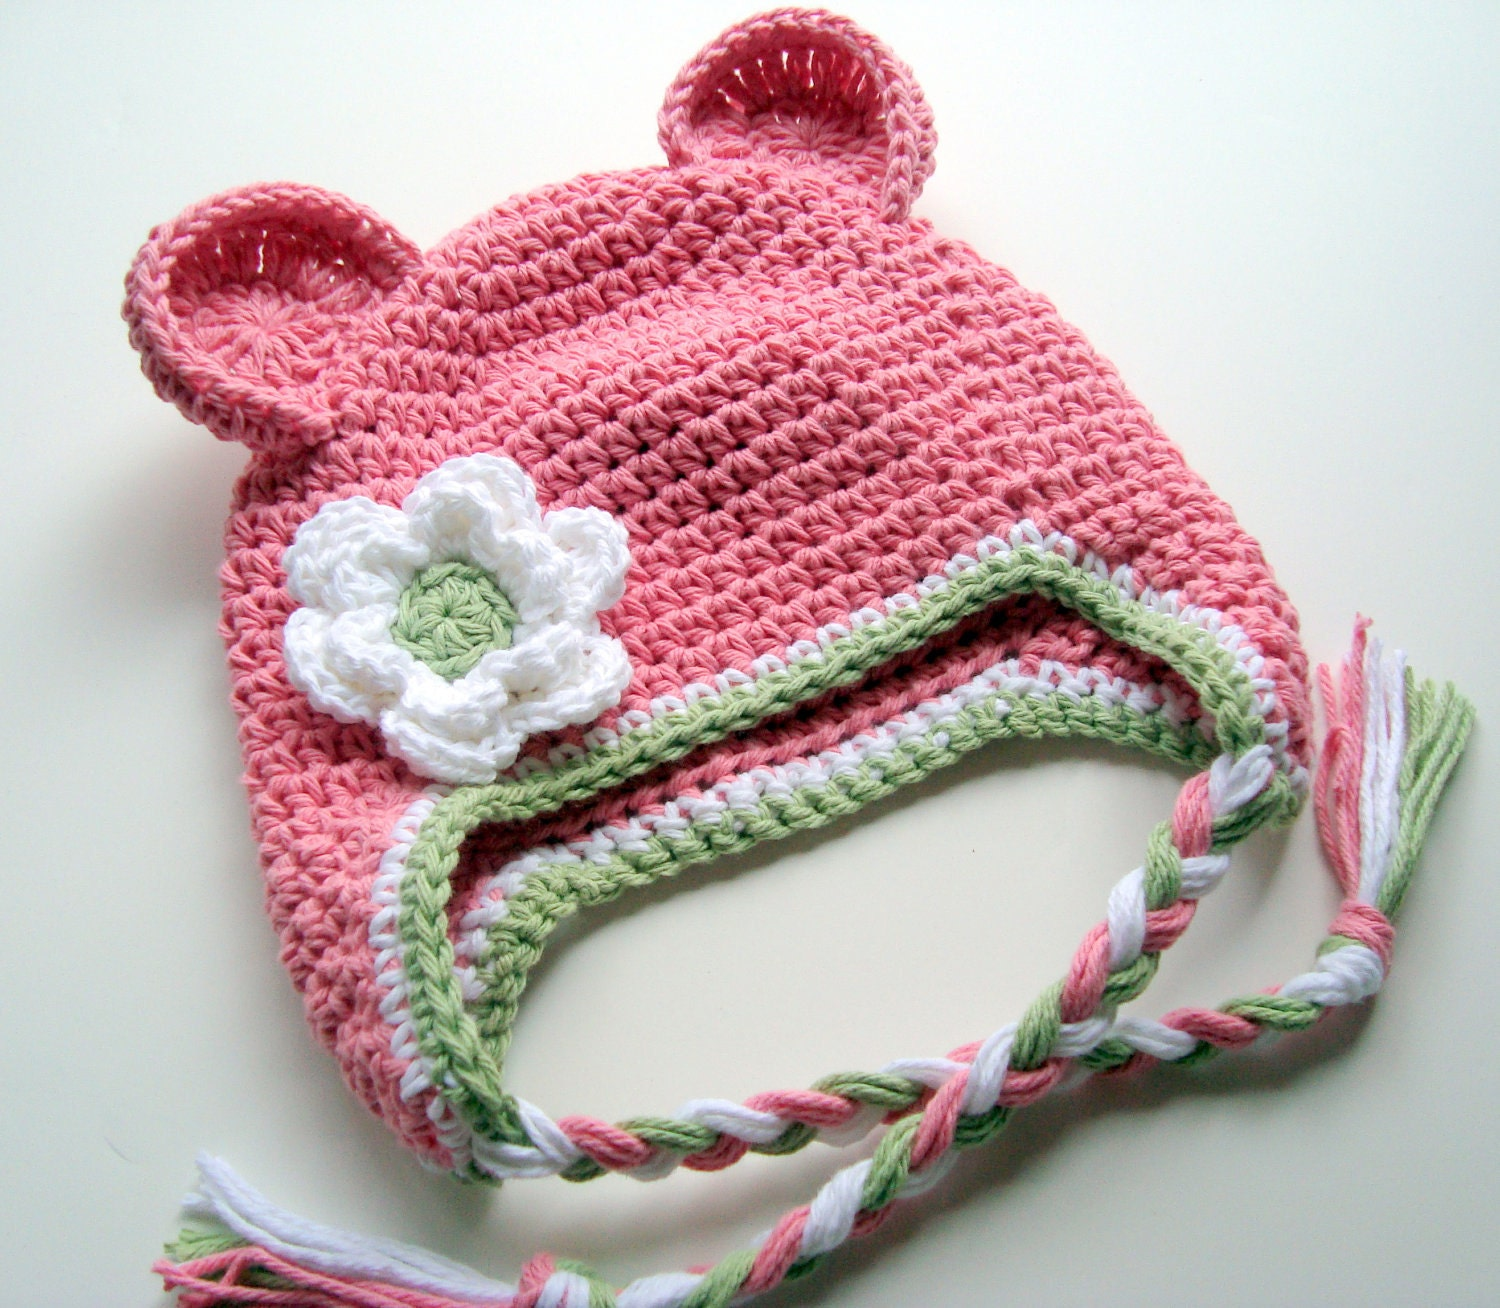 Girls Cotton Crochet Ear Flap Beanie Hat with Ears and Ties-Custom Made in Your Color Choices-MADE TO ORDER